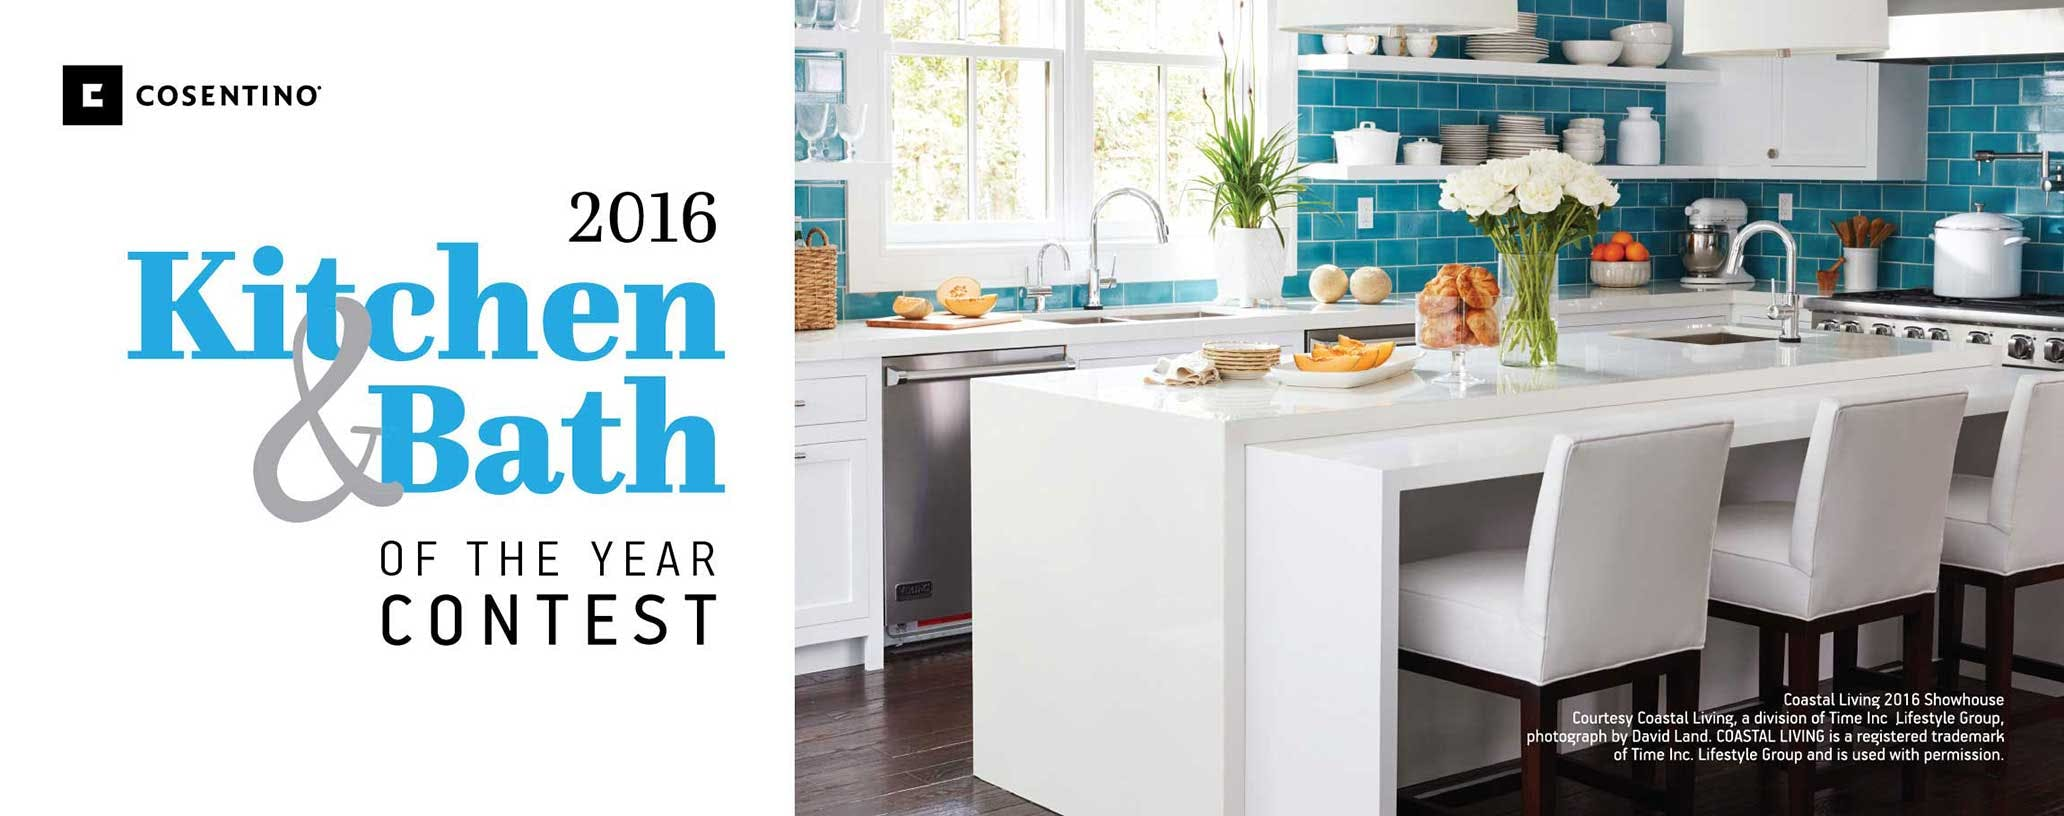 2016 Kitchen & Bath of the year contest